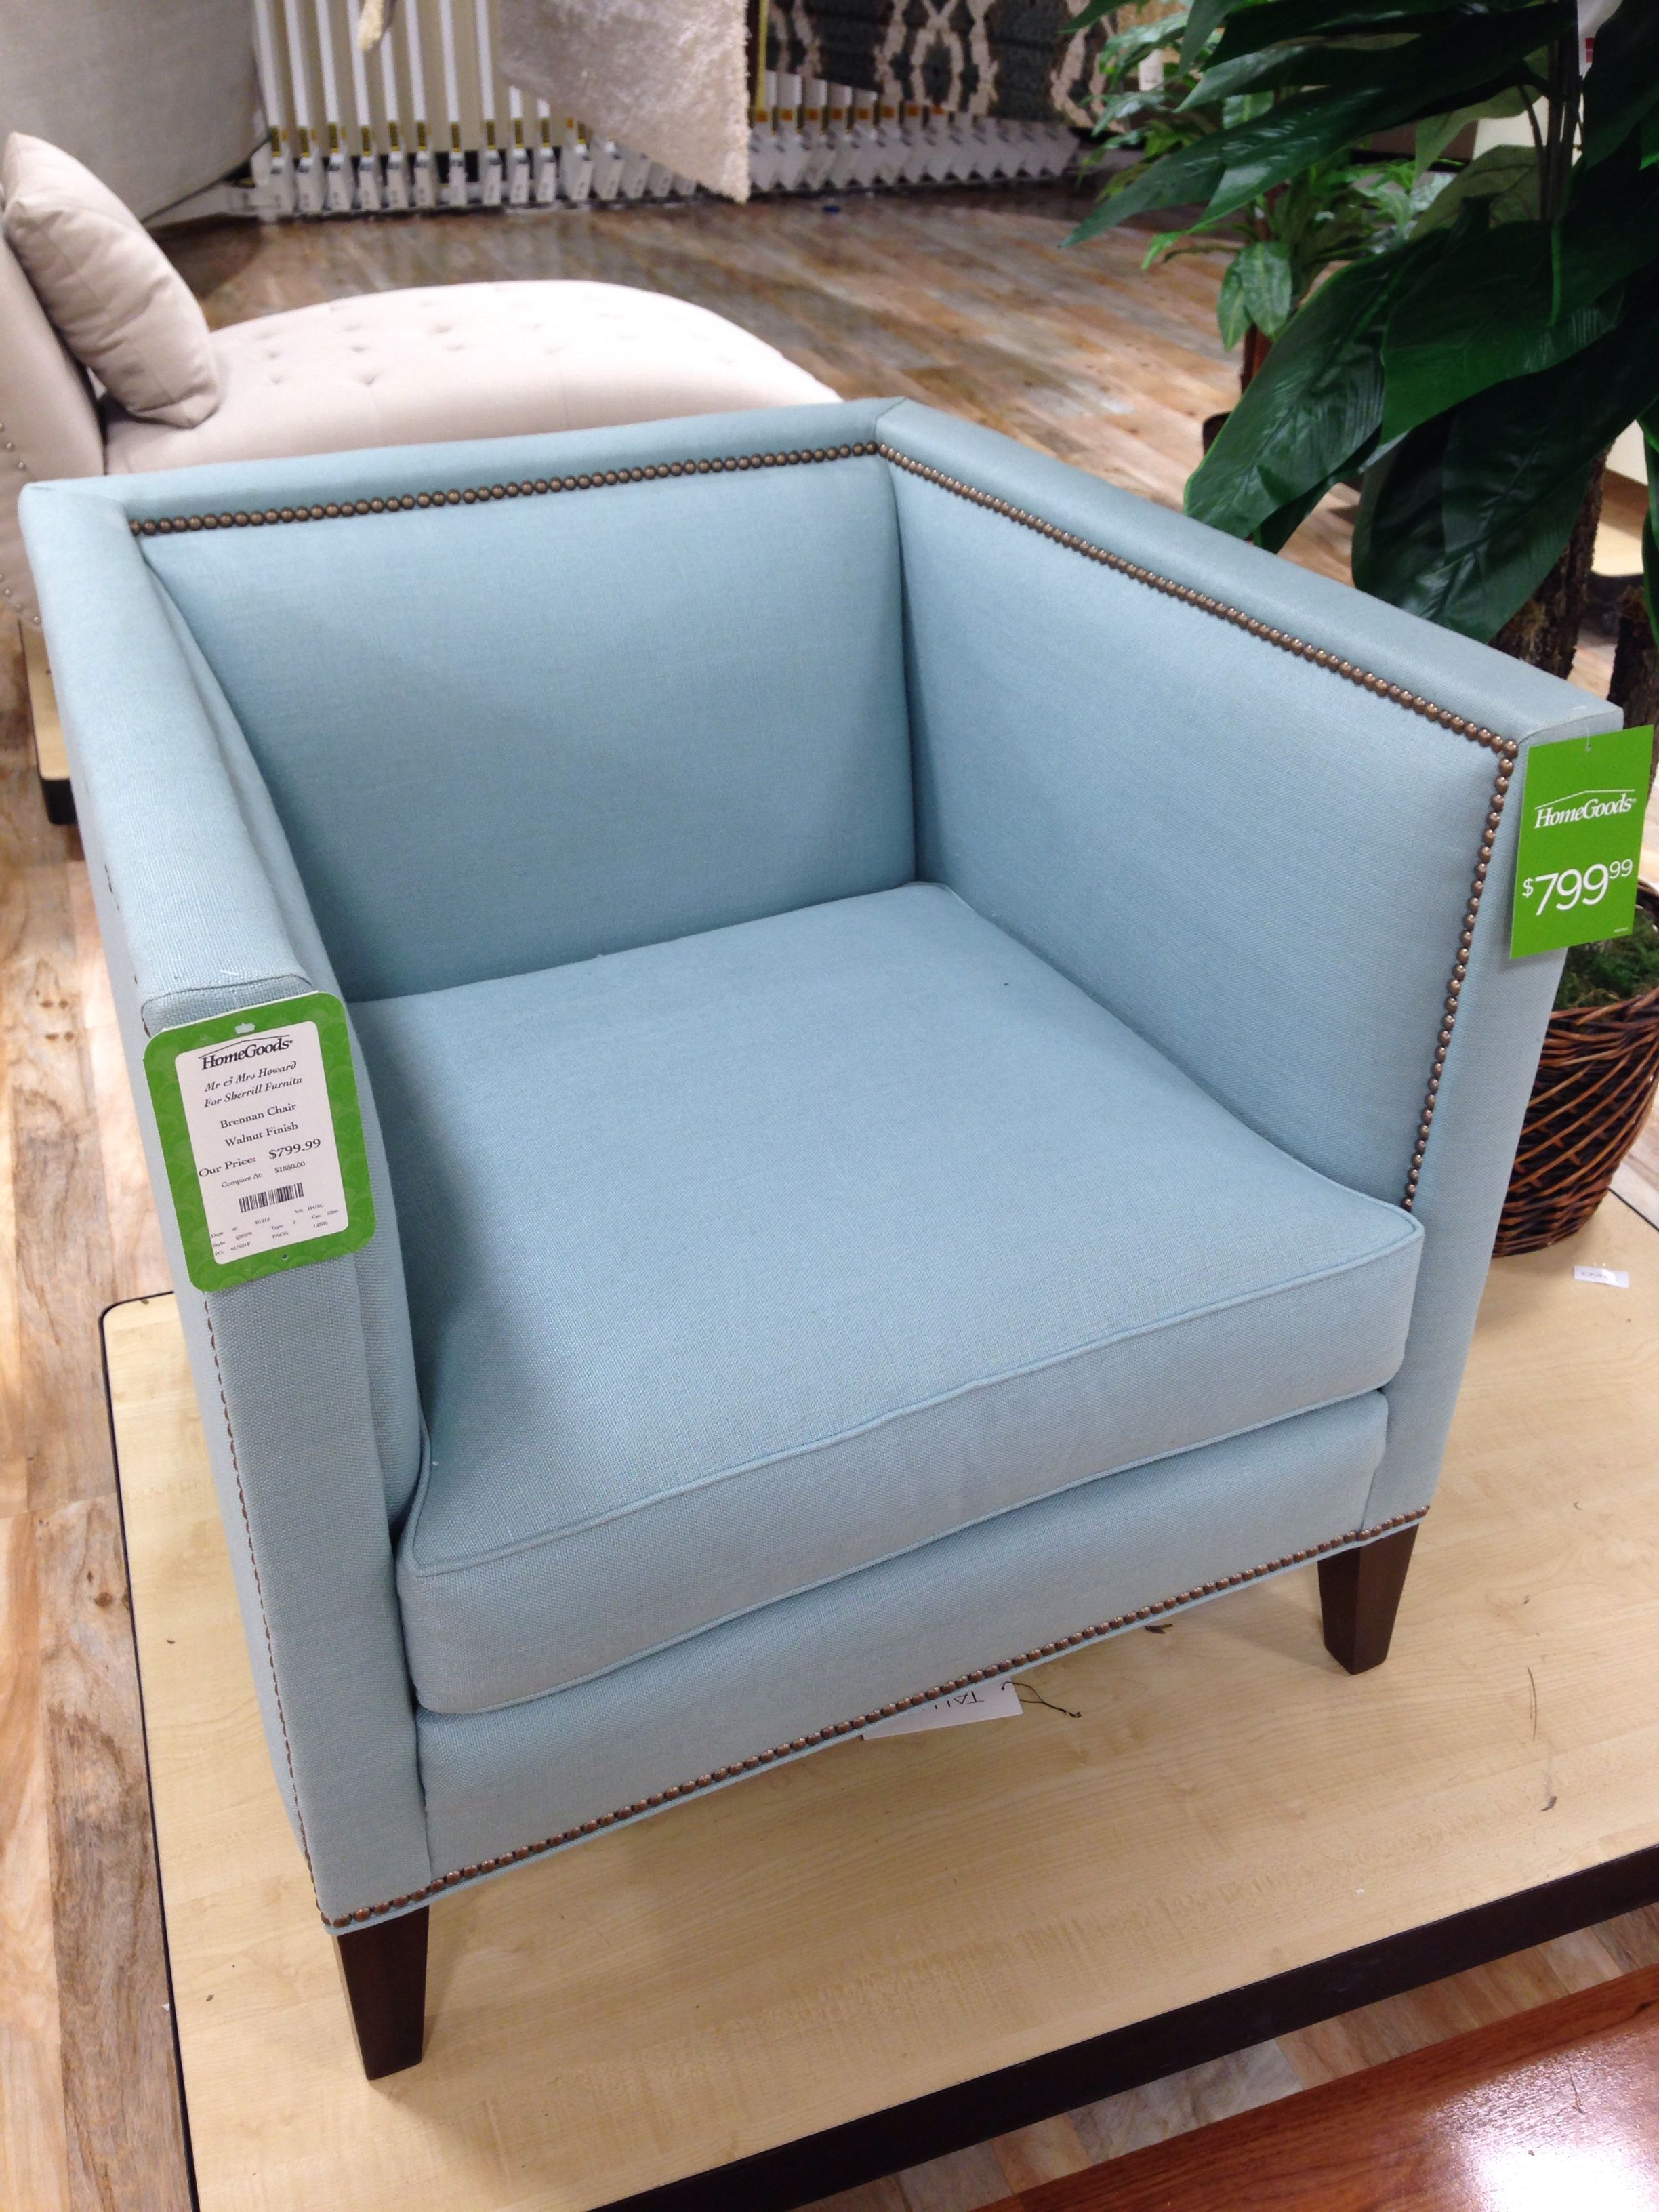 Club chair  Home goods store, Club chairs, Dream living rooms